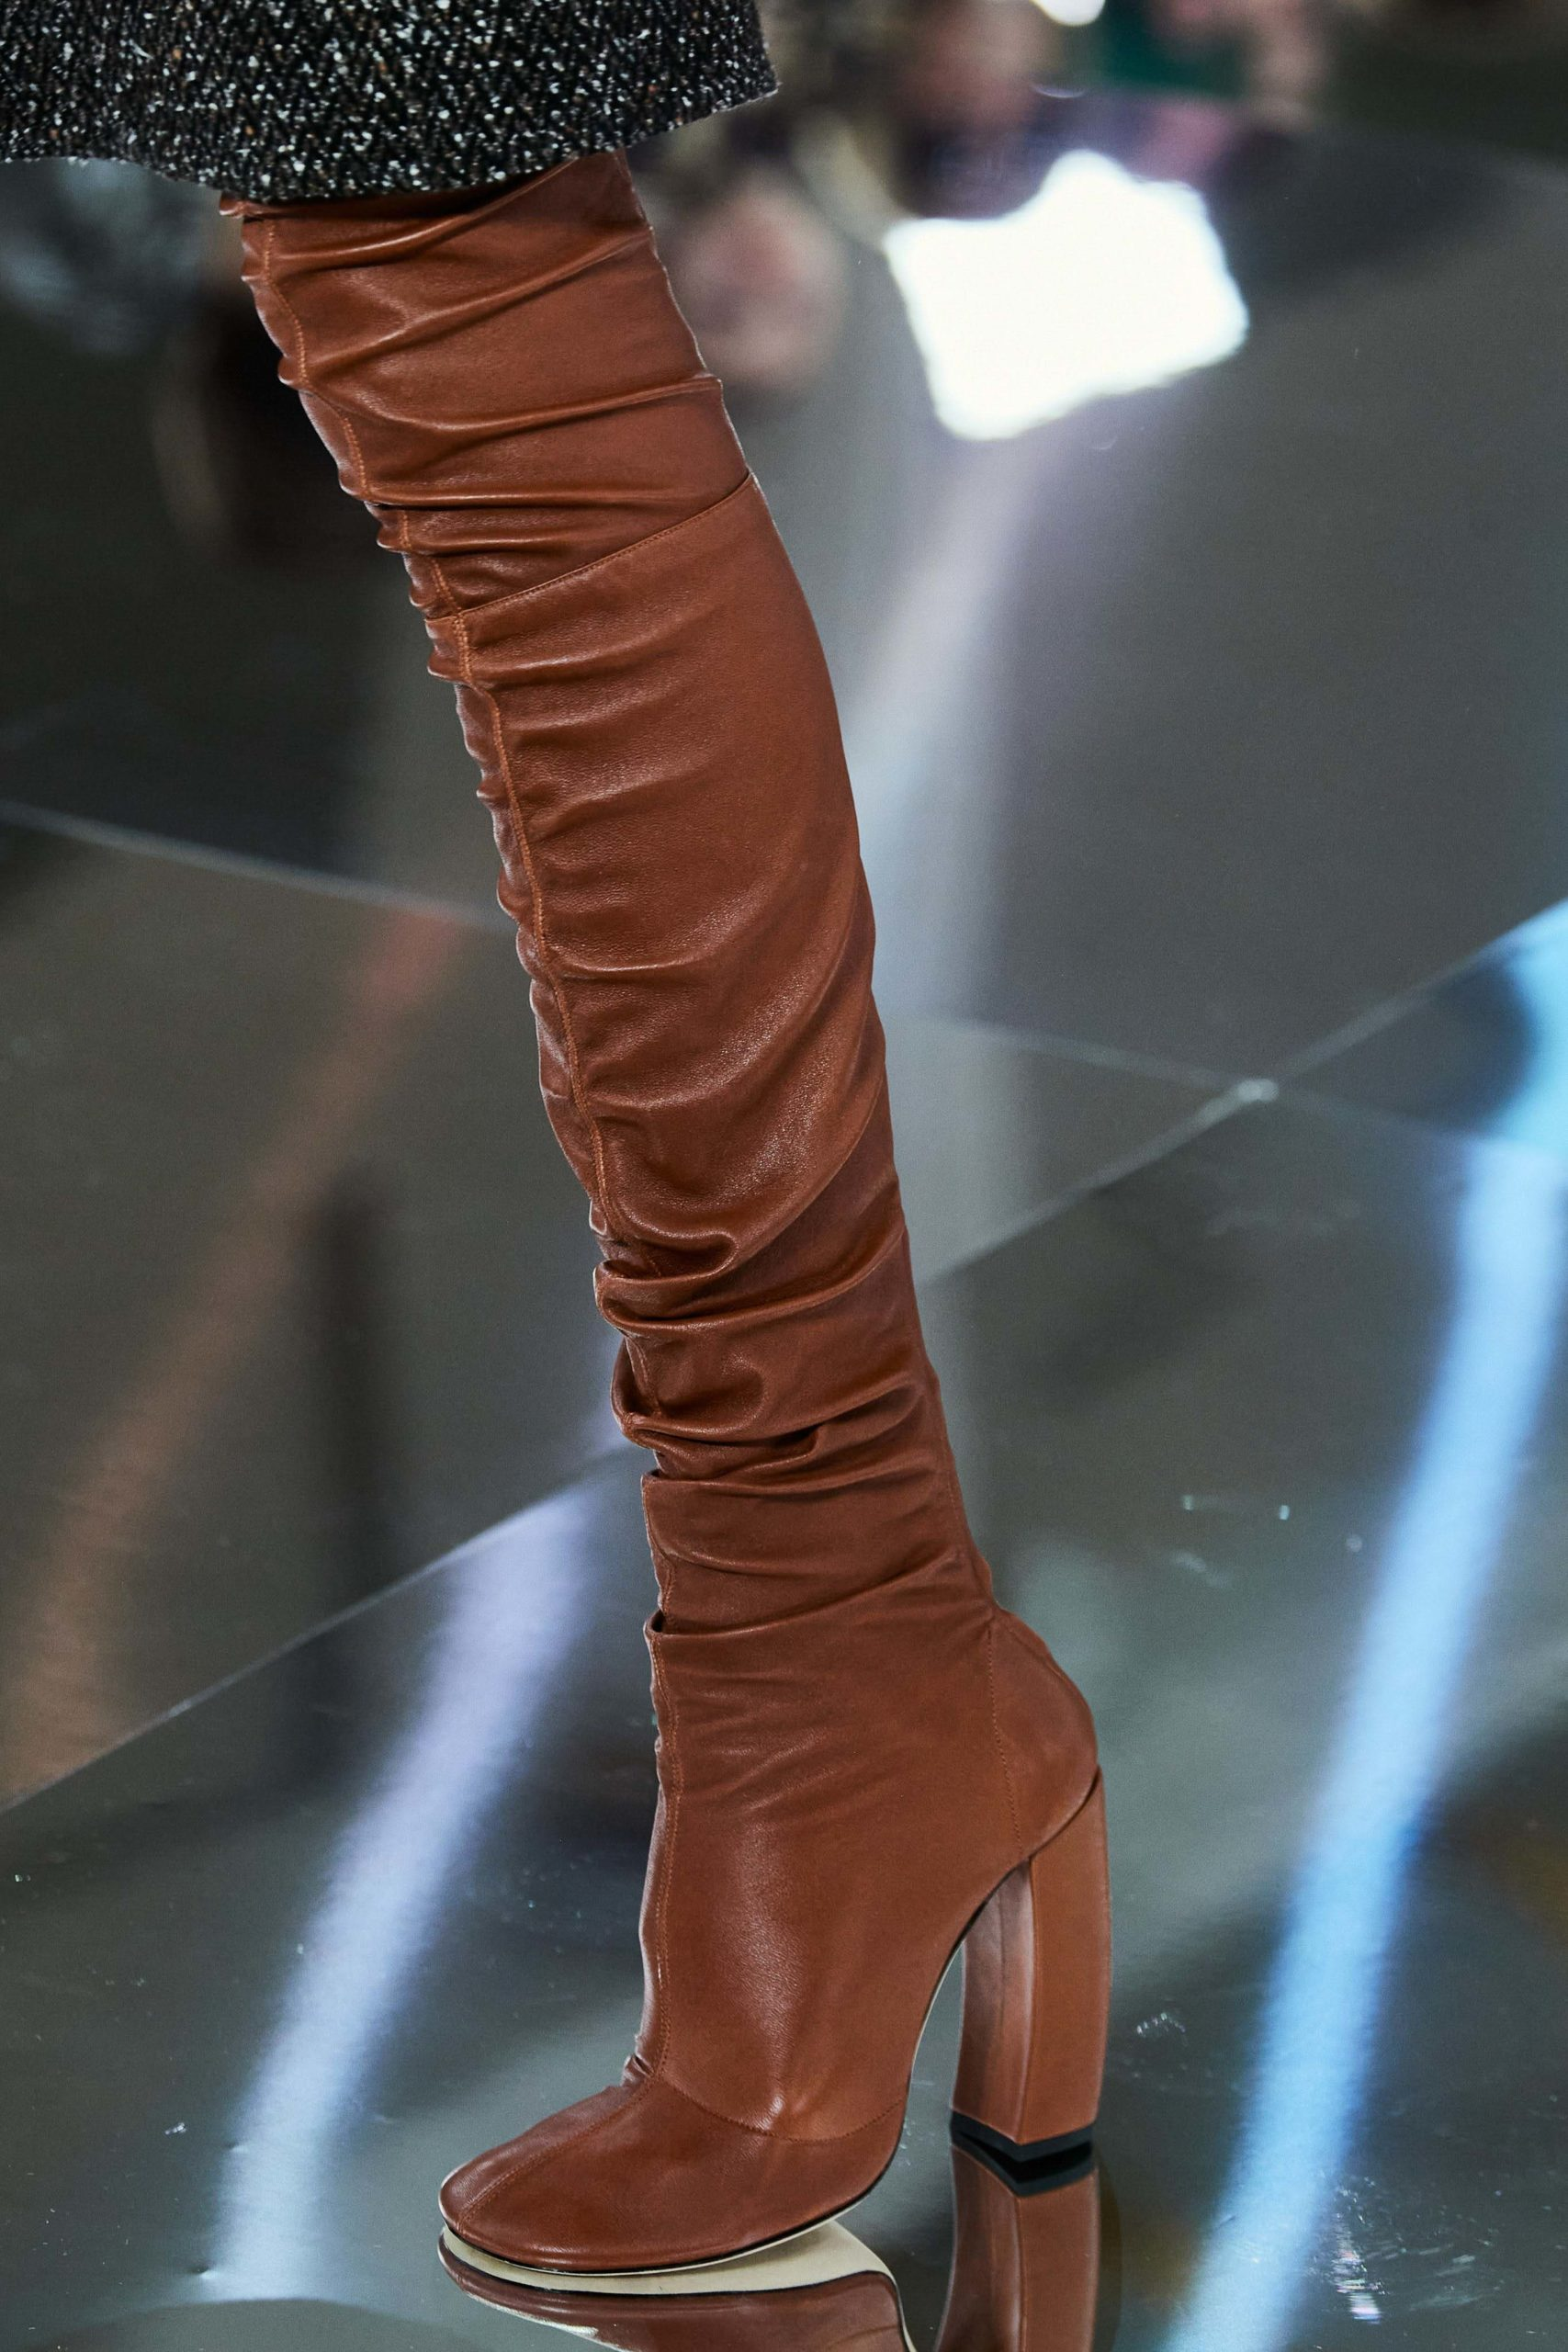 Victoria Beckham Fall 2020 trends runway coverage Ready To Wear Vogue otk socks boots